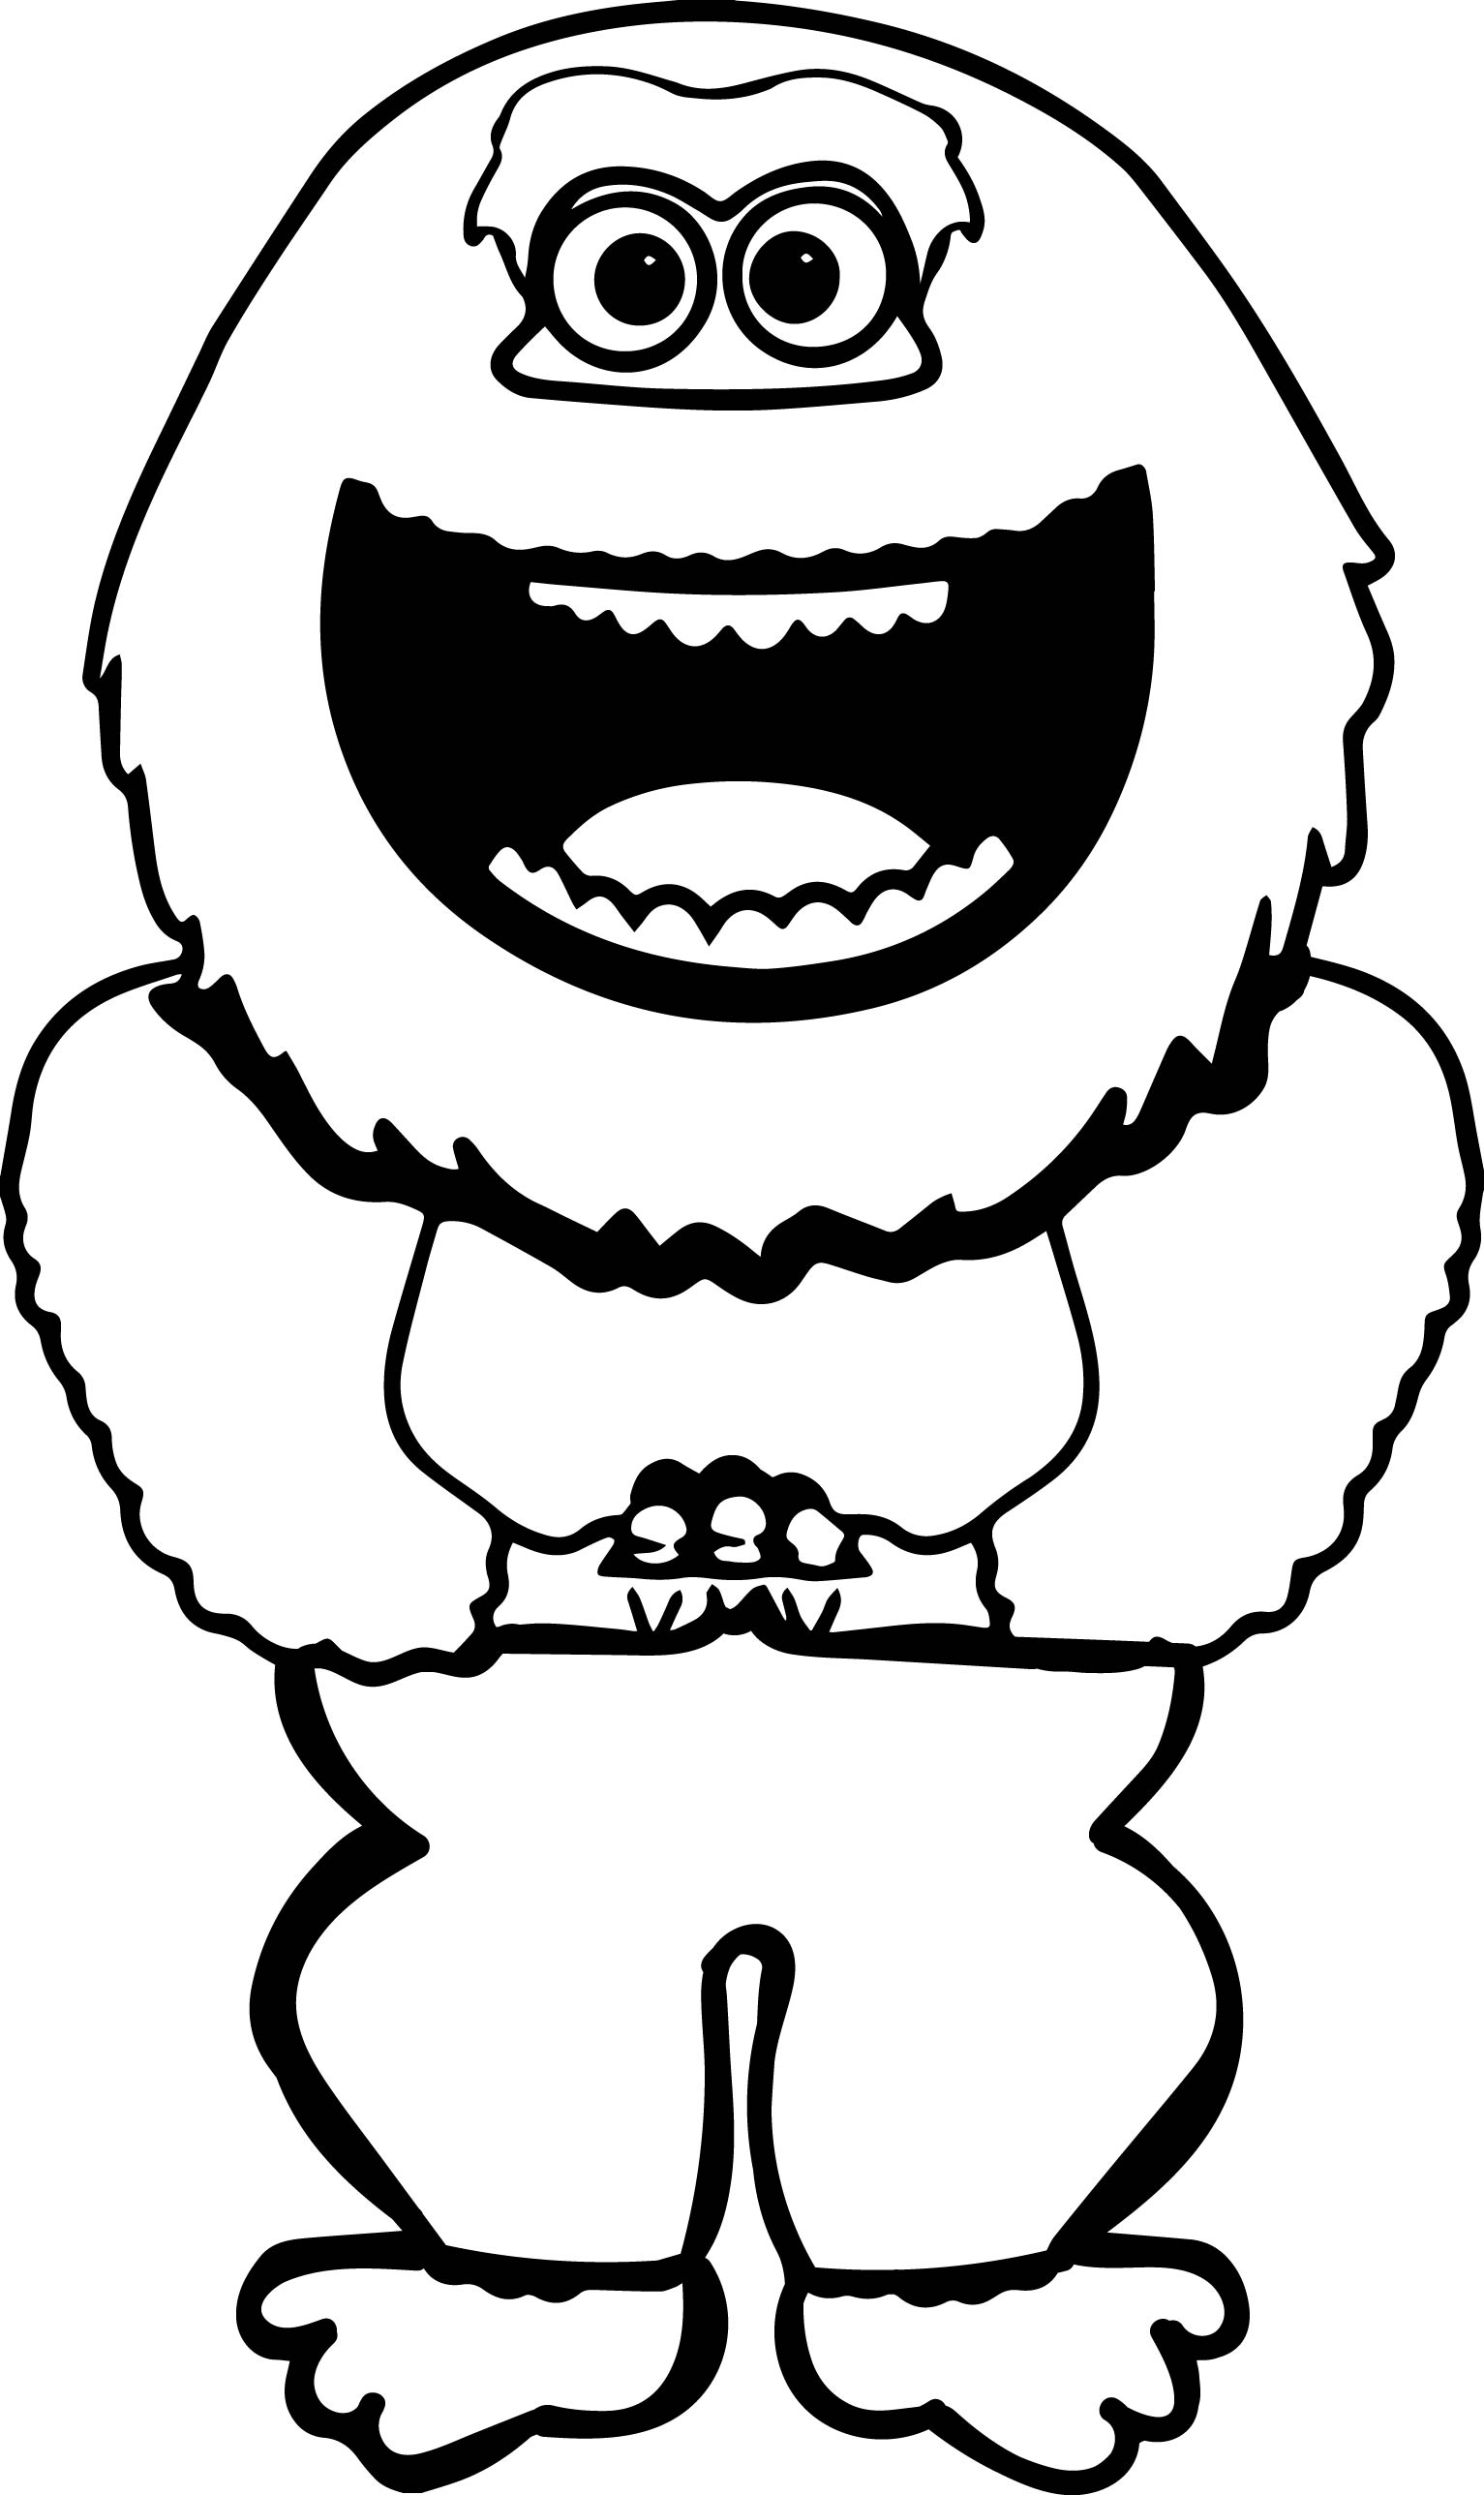 Smiling Abominable Snowman Coloring Page